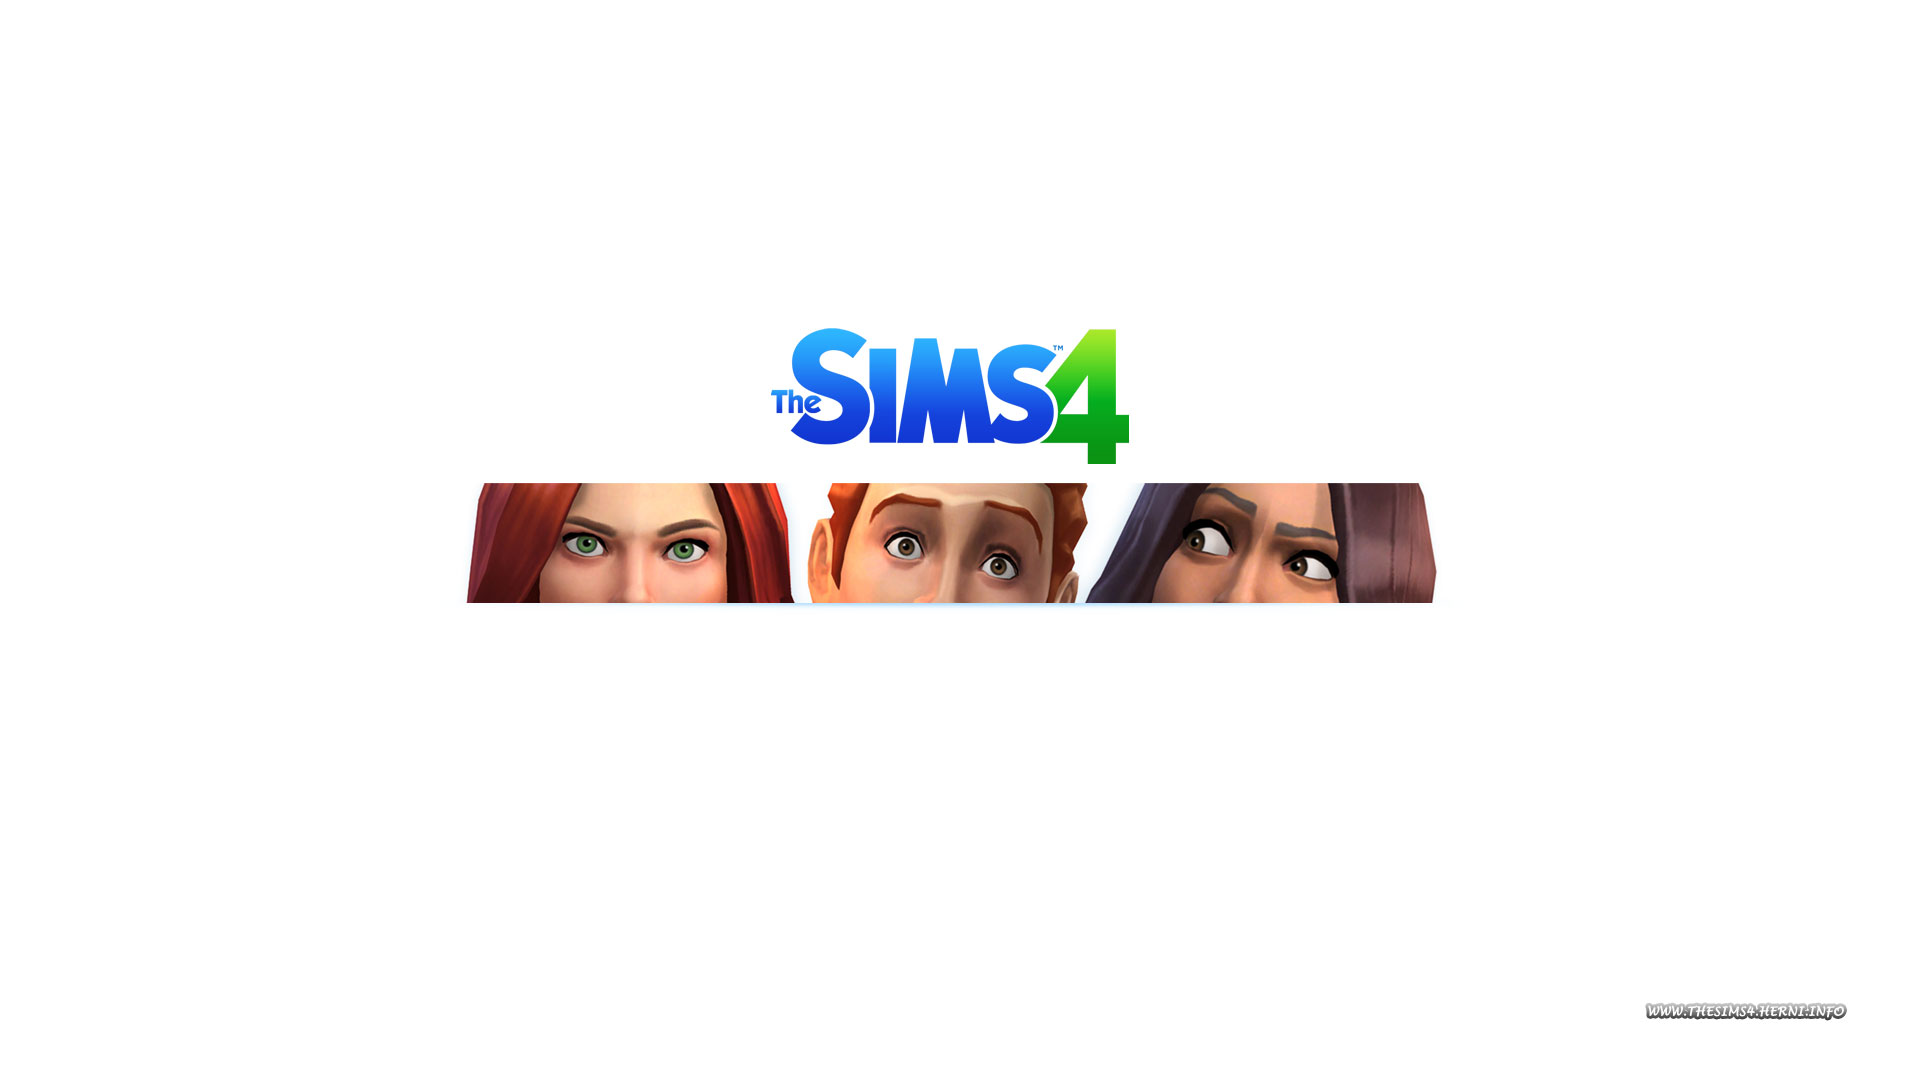 Tapeta ke hře The Sims 4